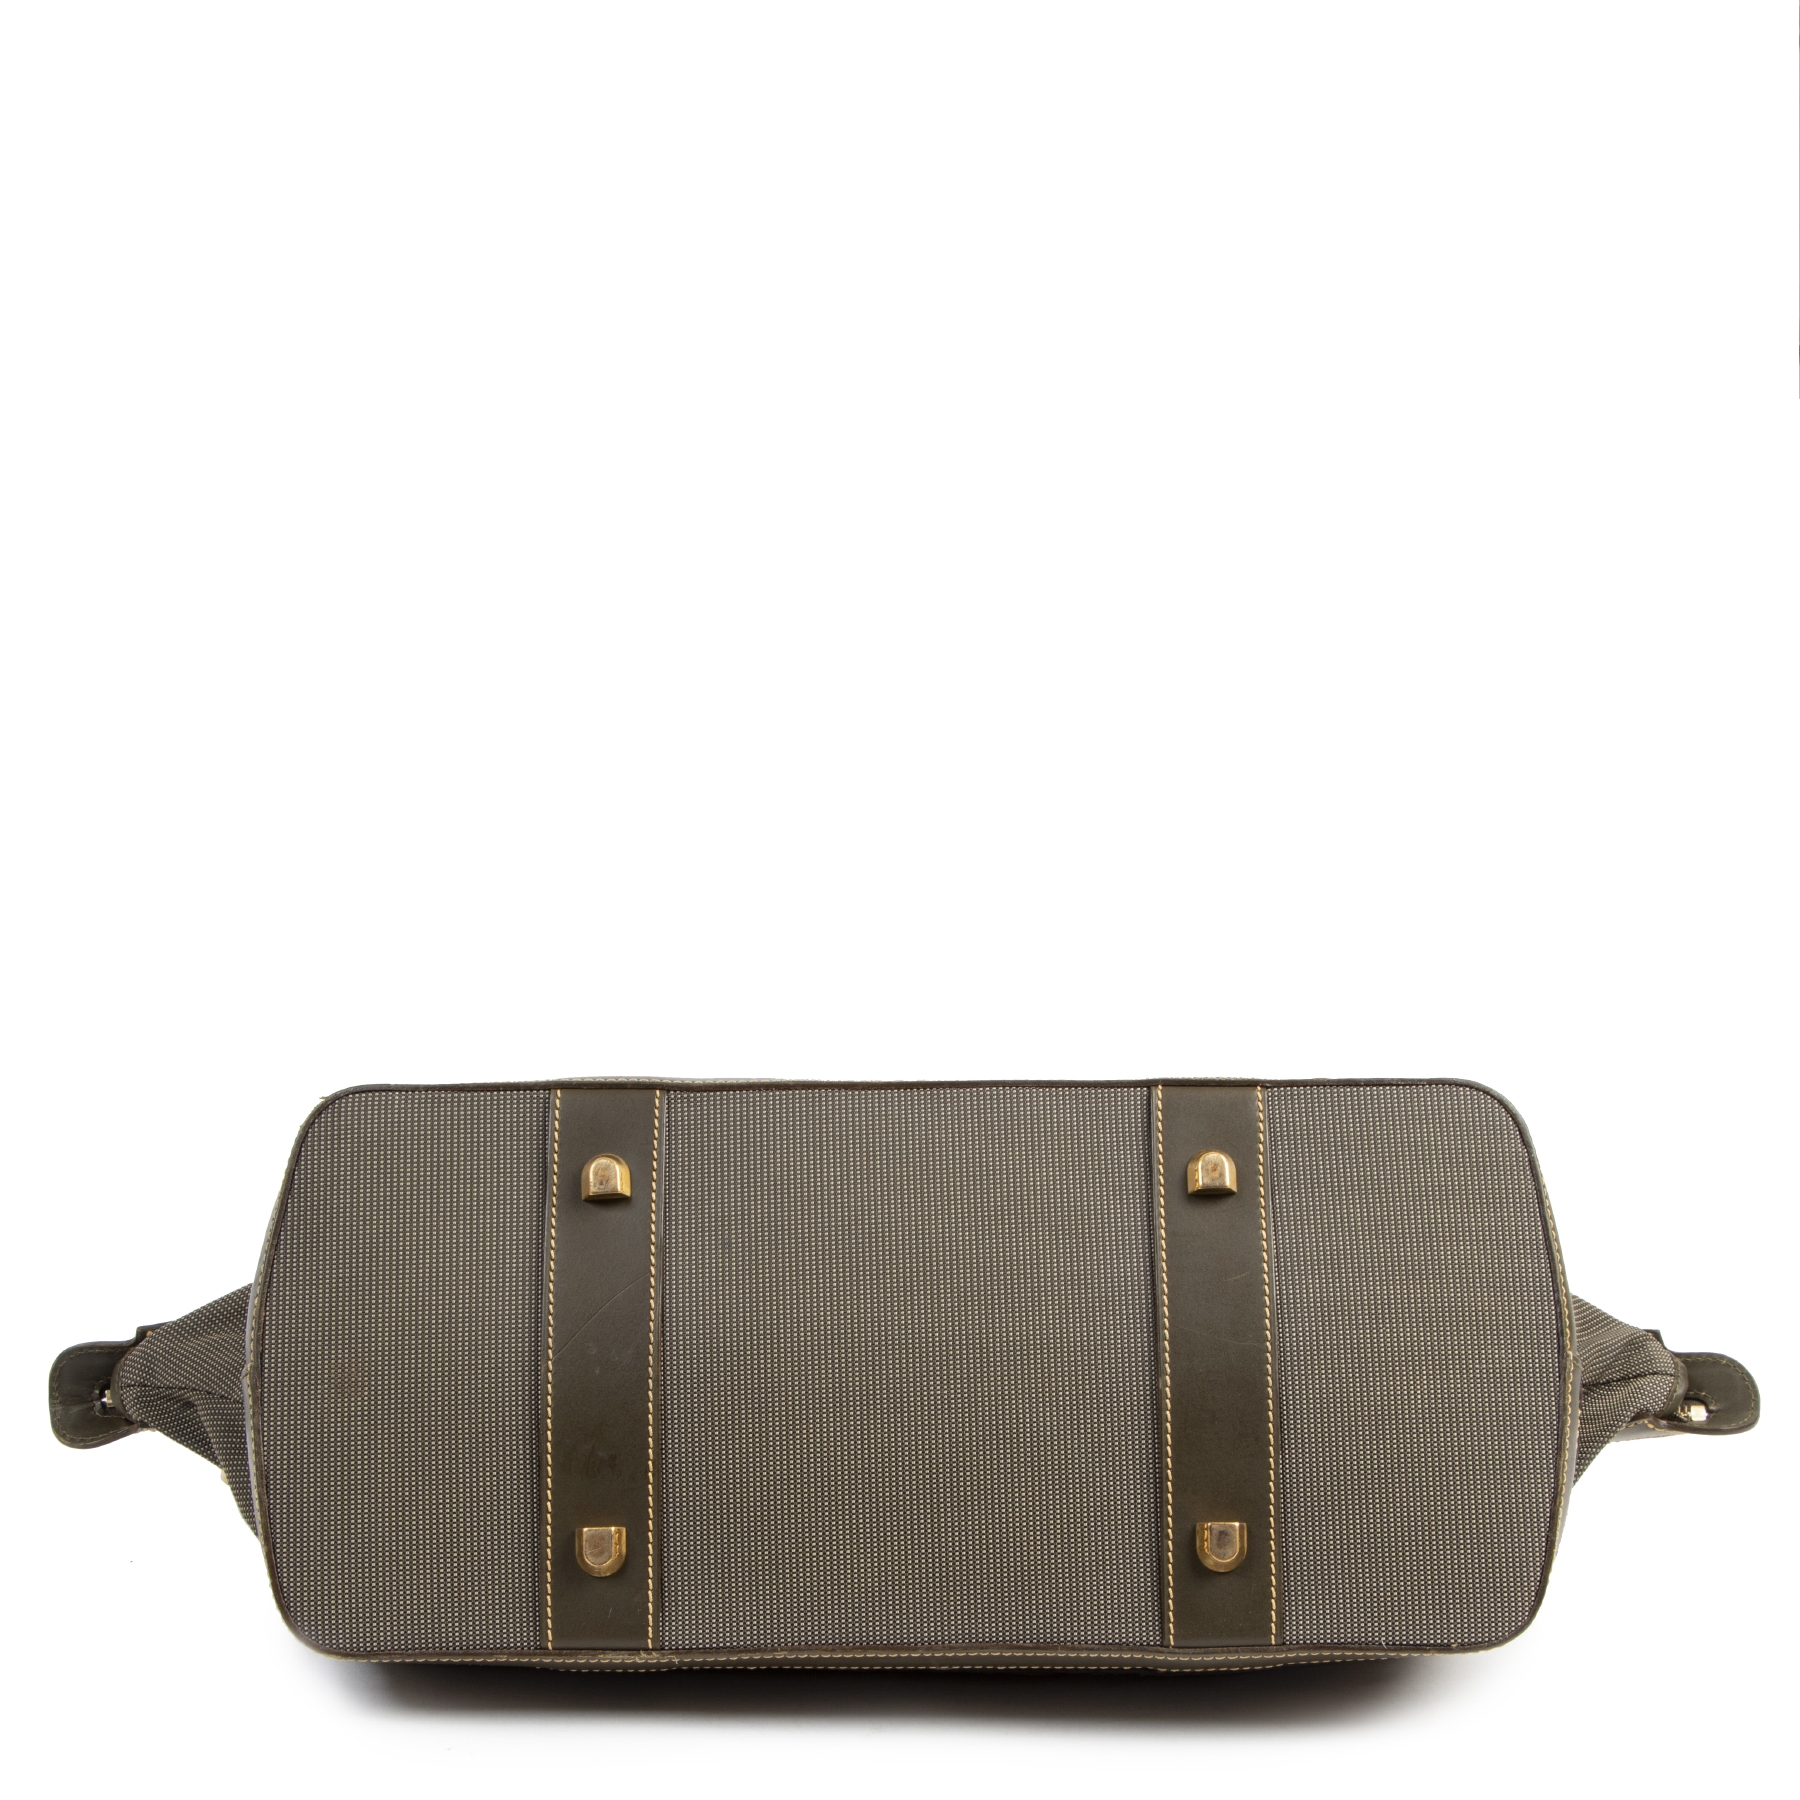 Authentique seconde-main vintage Delvaux Green Leather Medium Luggage achète en ligne webshop LabelLOV